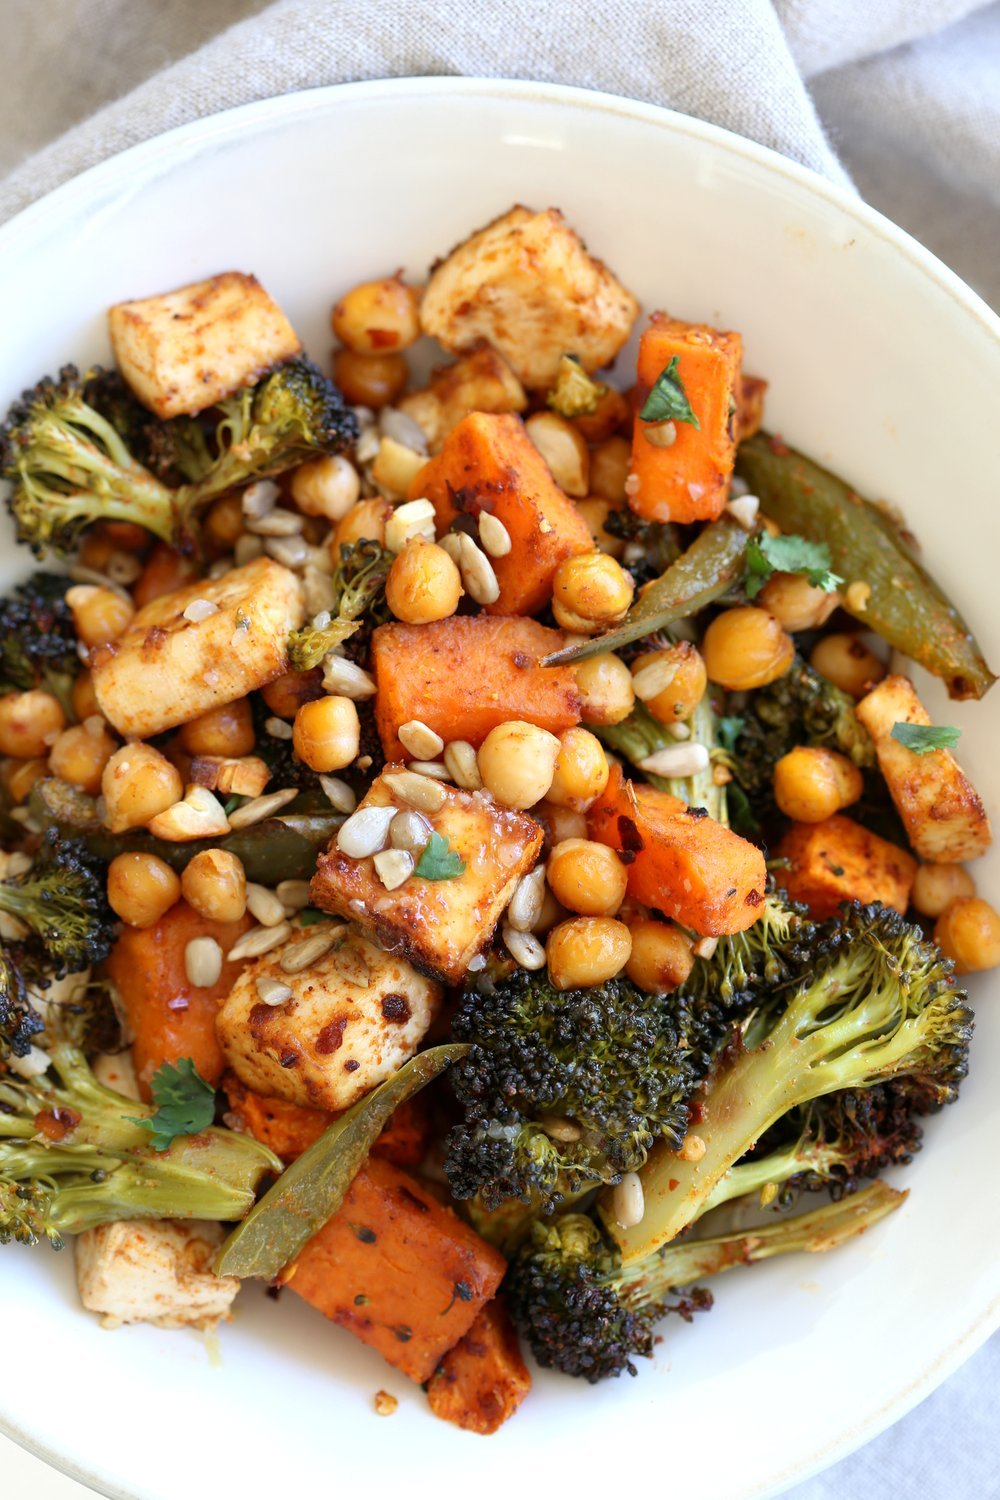 Sheet Pan Veggie Dinner with Roasted Veggies, Chickpeas, Tofu in a Bowl for our Sheet Pan Veggie Dinner